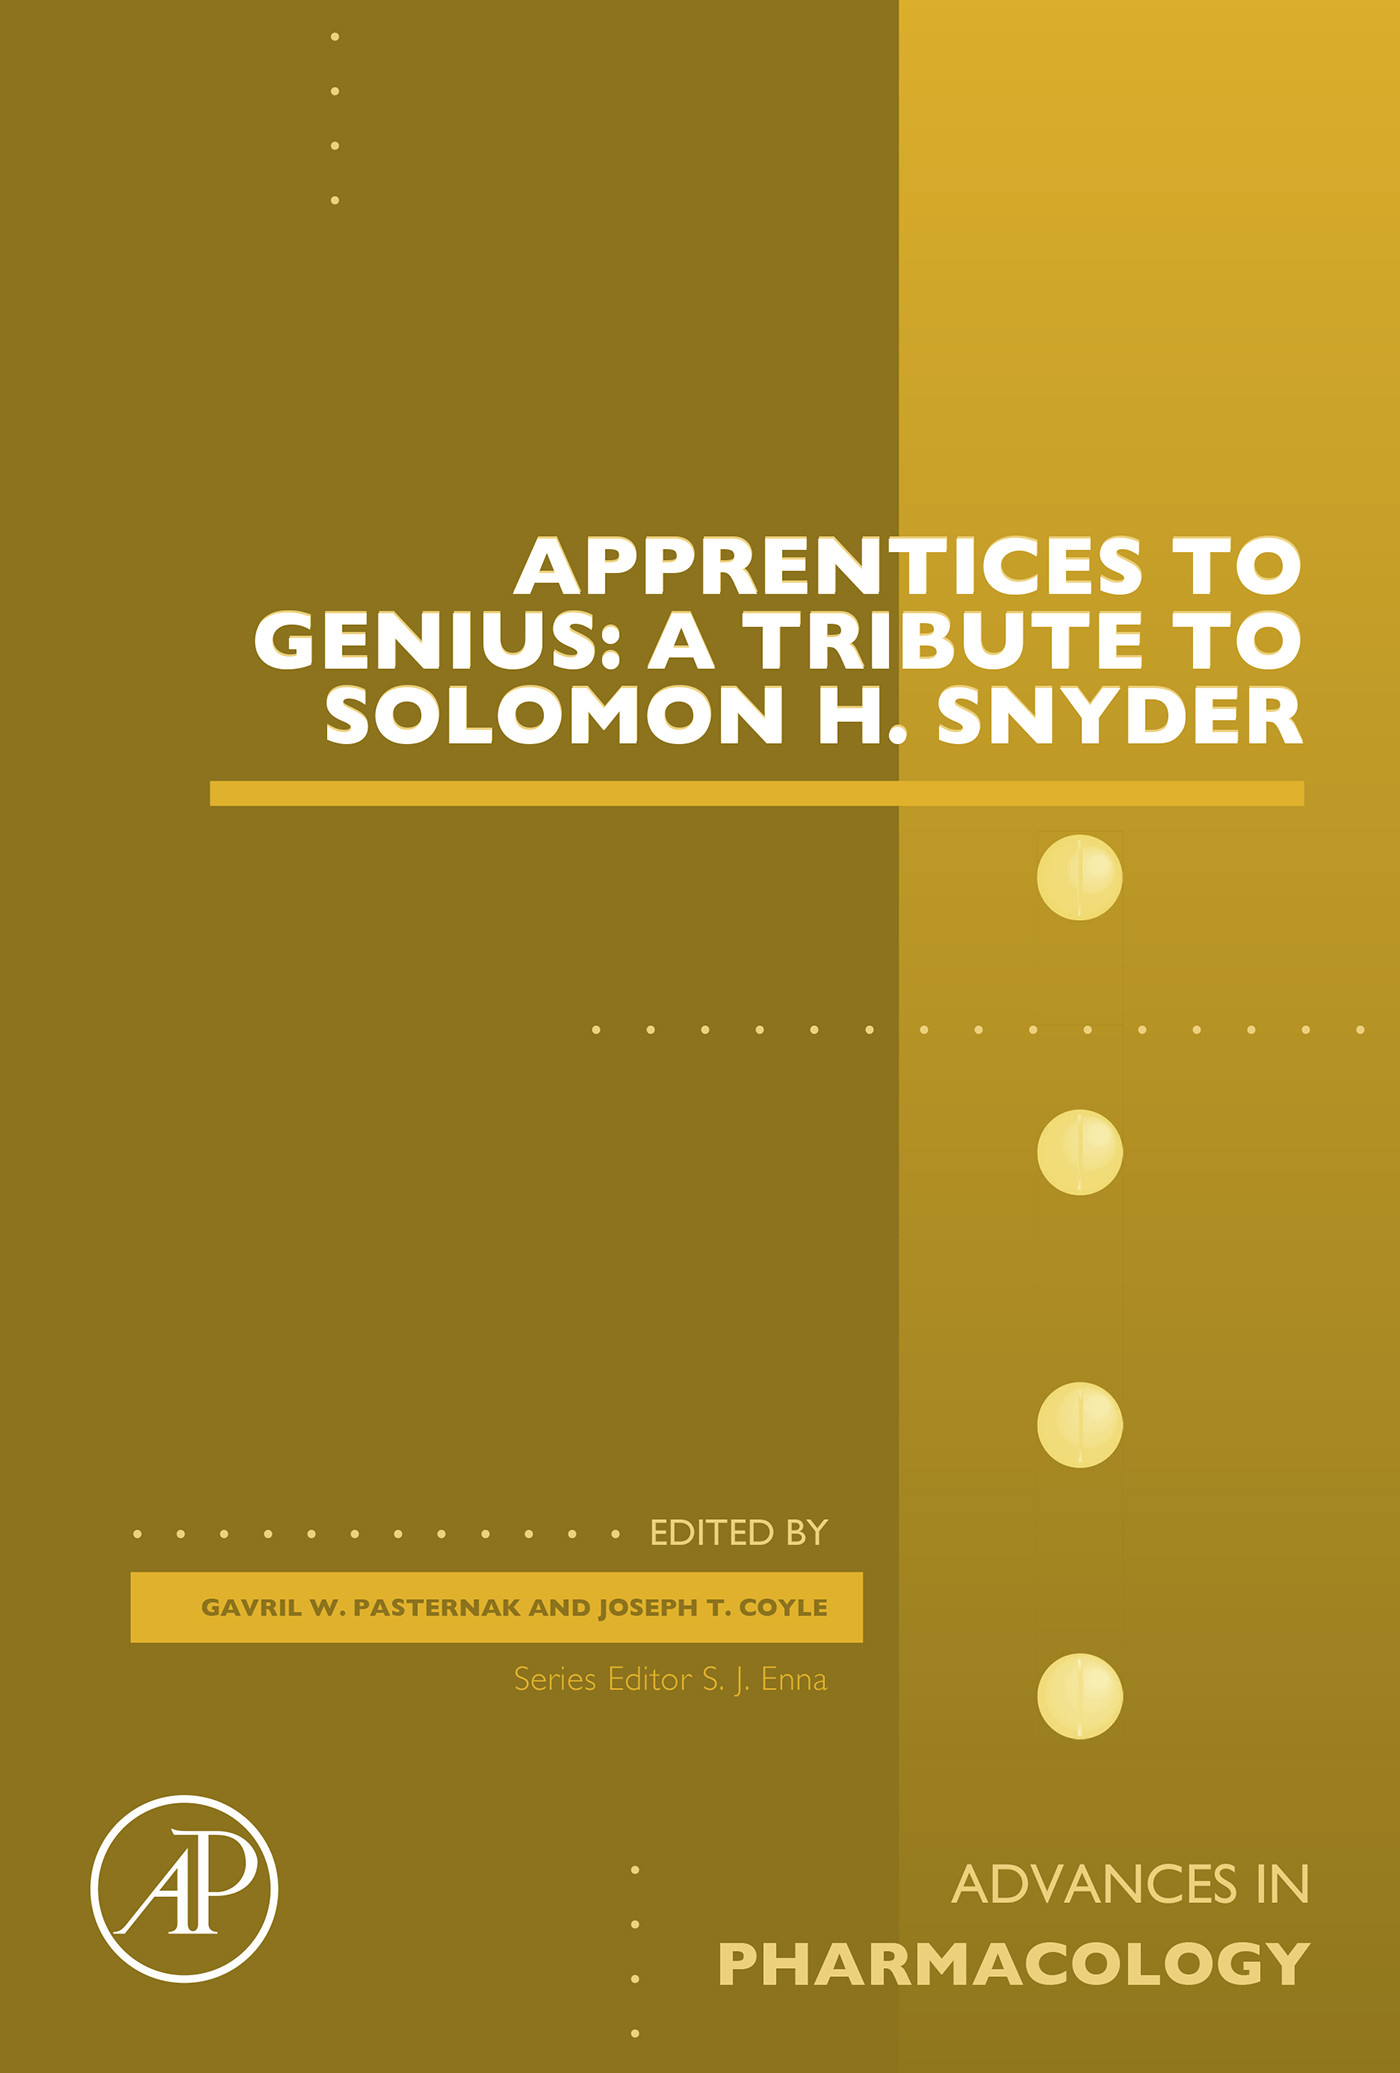 Apprentices to Genius: A tribute to Solomon H. Snyder